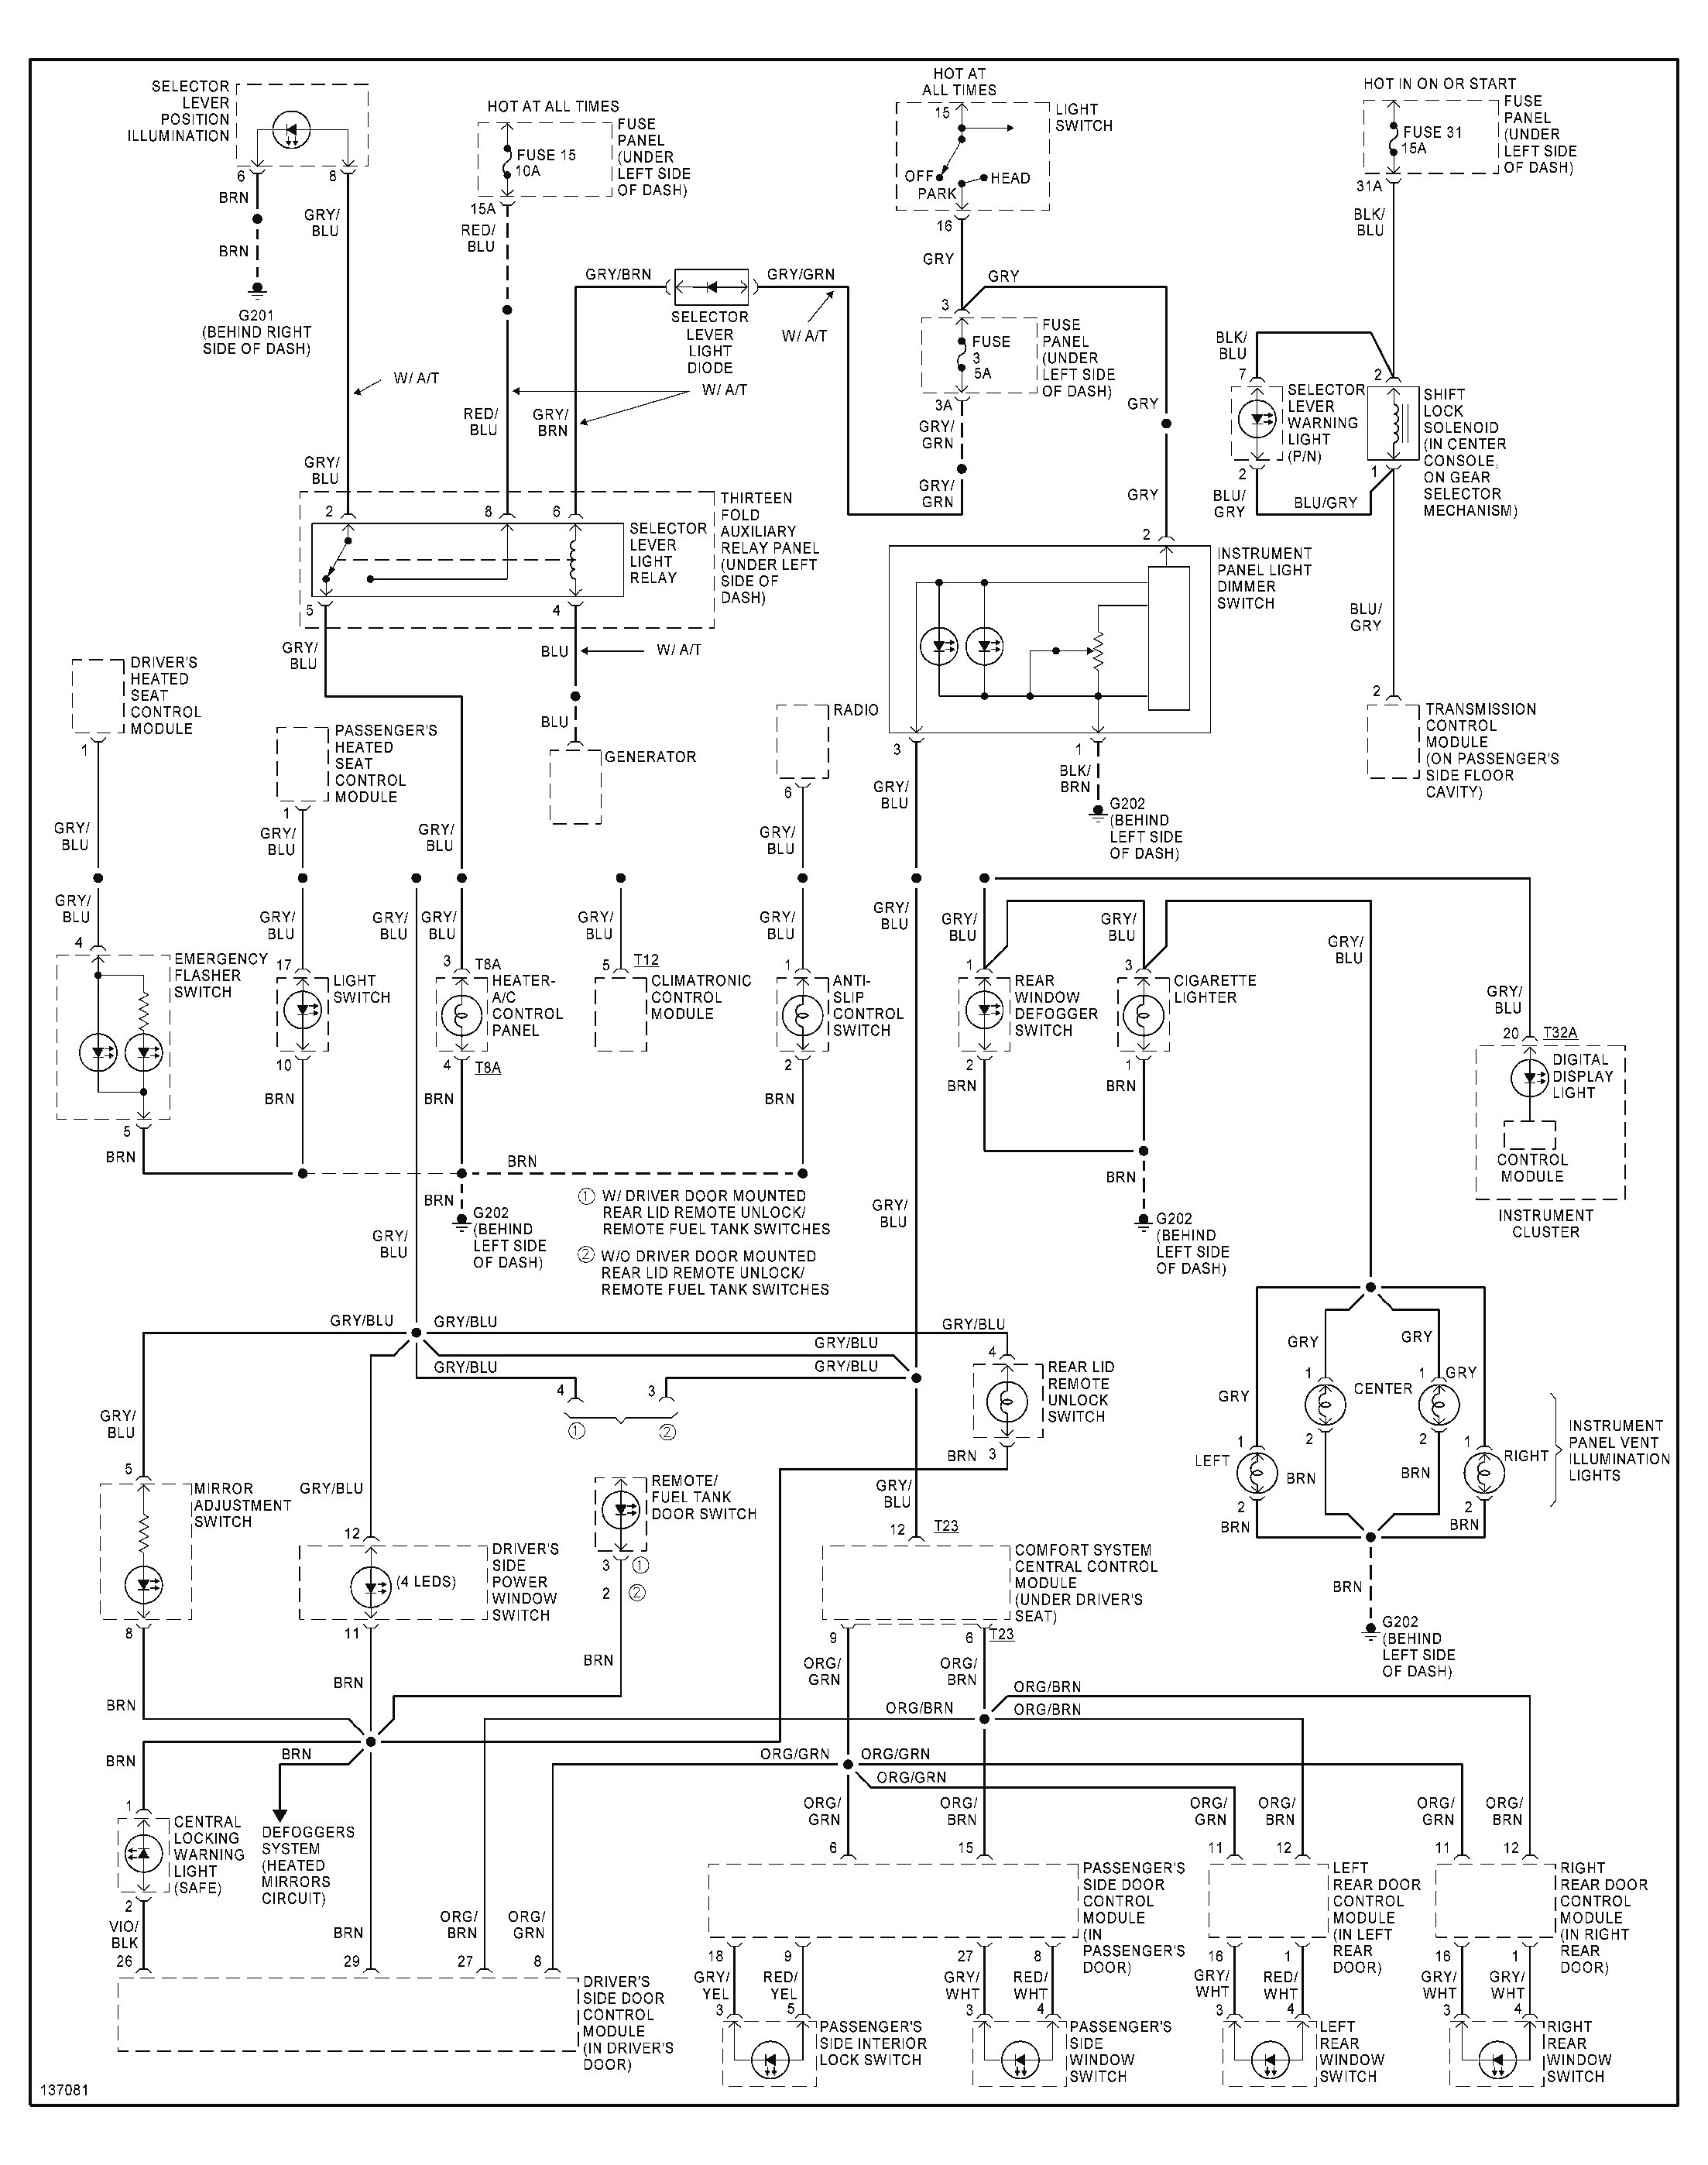 Wiring Diagram Mitsubishi Montero Xls Opinions About 2002 Fuse 89 U2022 Rh Hunzadesign Co Uk 1984